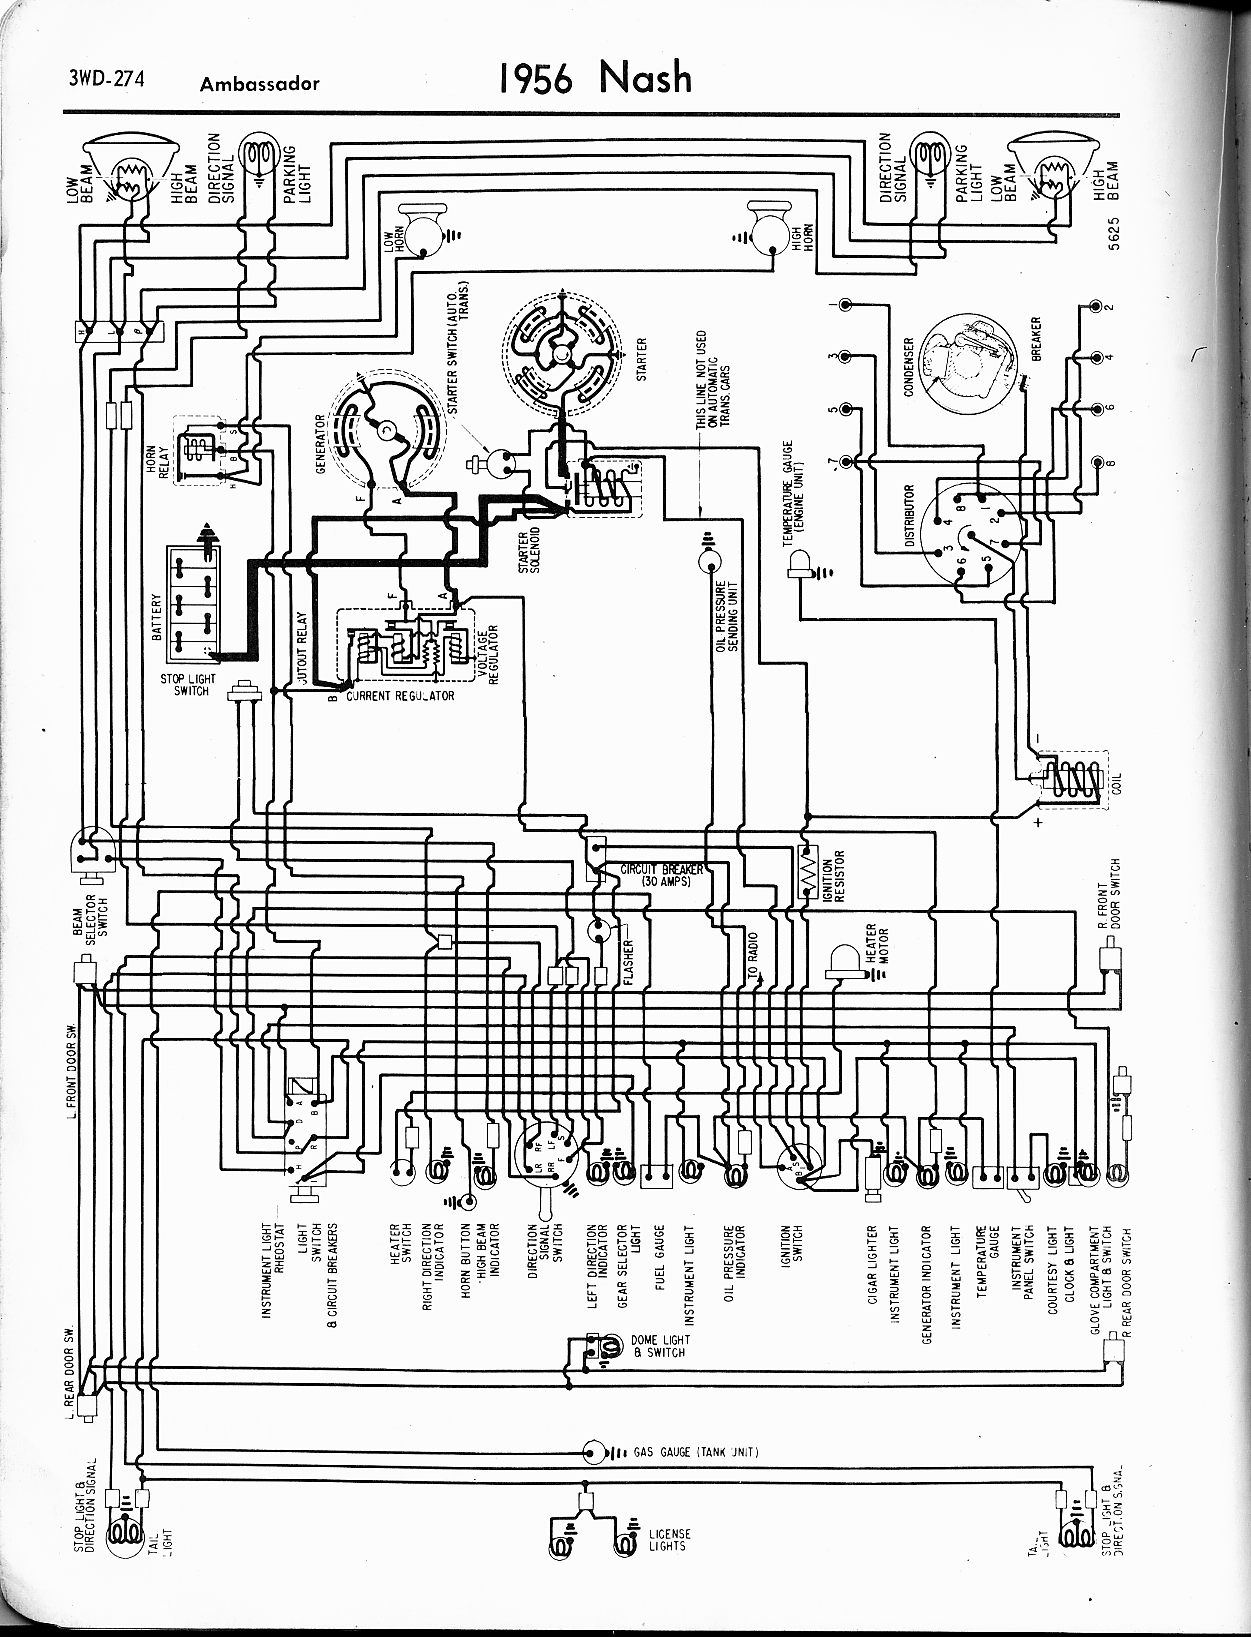 old car oldsmobile wiring diagrams automotive nash wiring diagrams - the old car manual project old outside light wiring diagrams